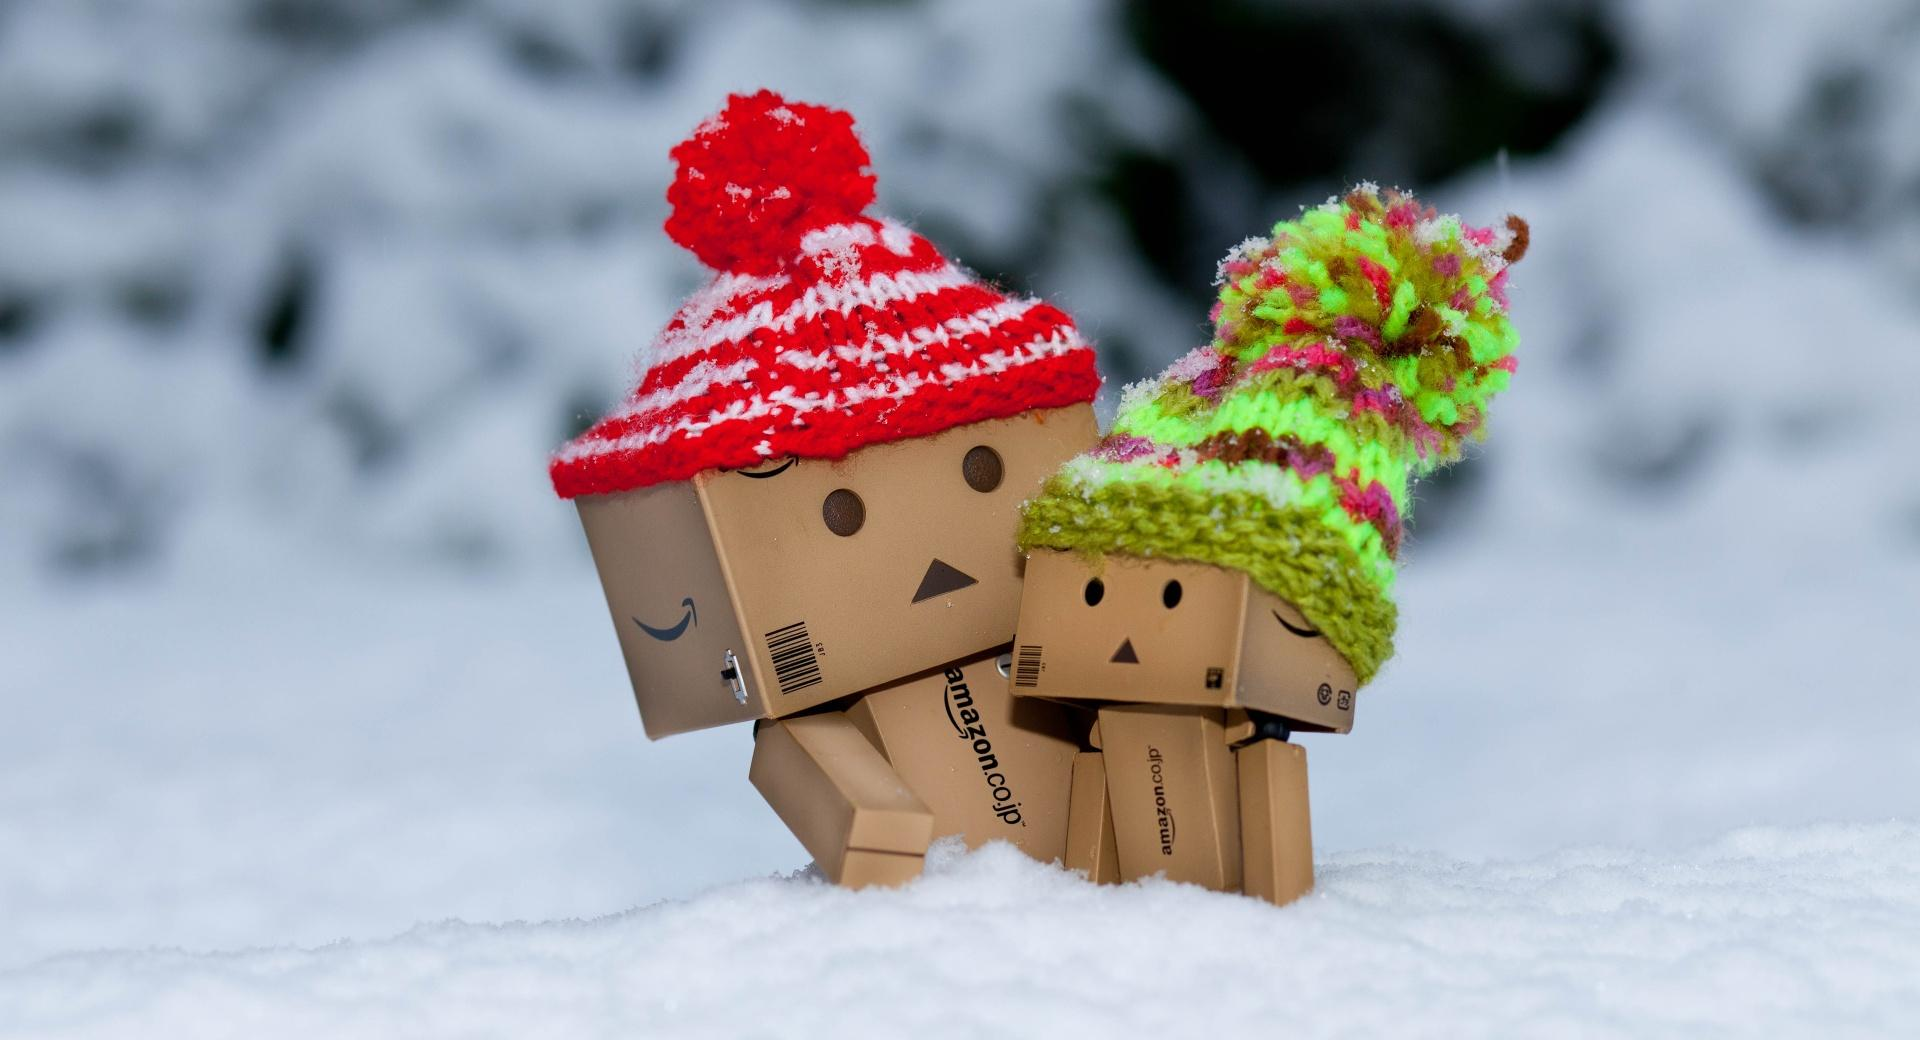 Danbo Is Scared By So Much Snow wallpapers HD quality